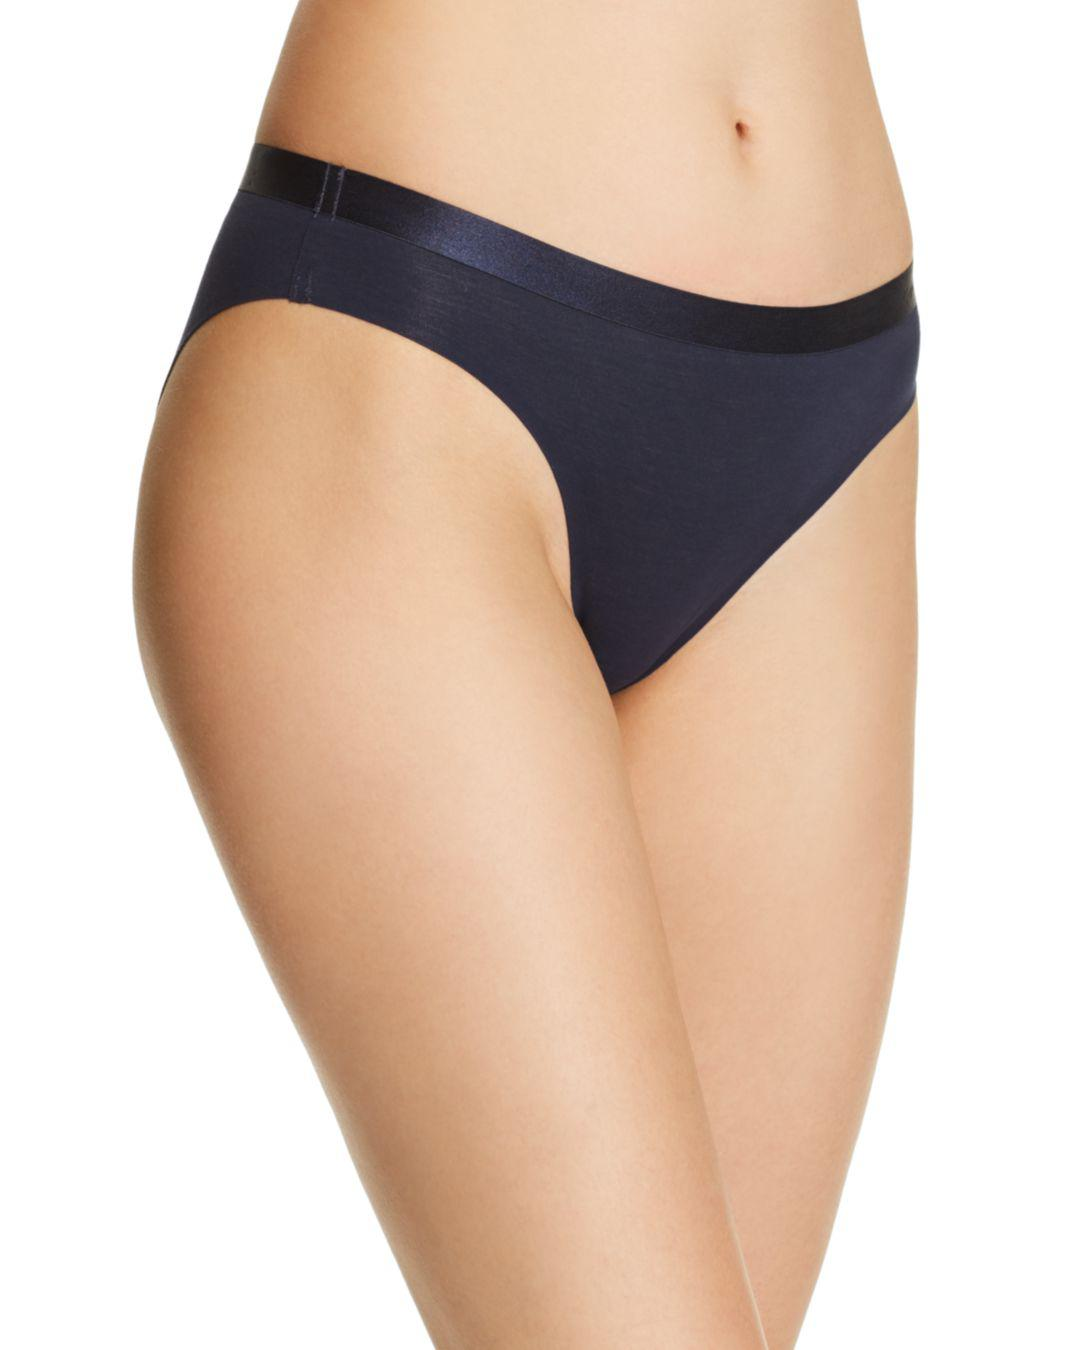 a0512dc28a8d6 Calvin Klein Ck Black Structure Cotton Bikini in Blue - Lyst